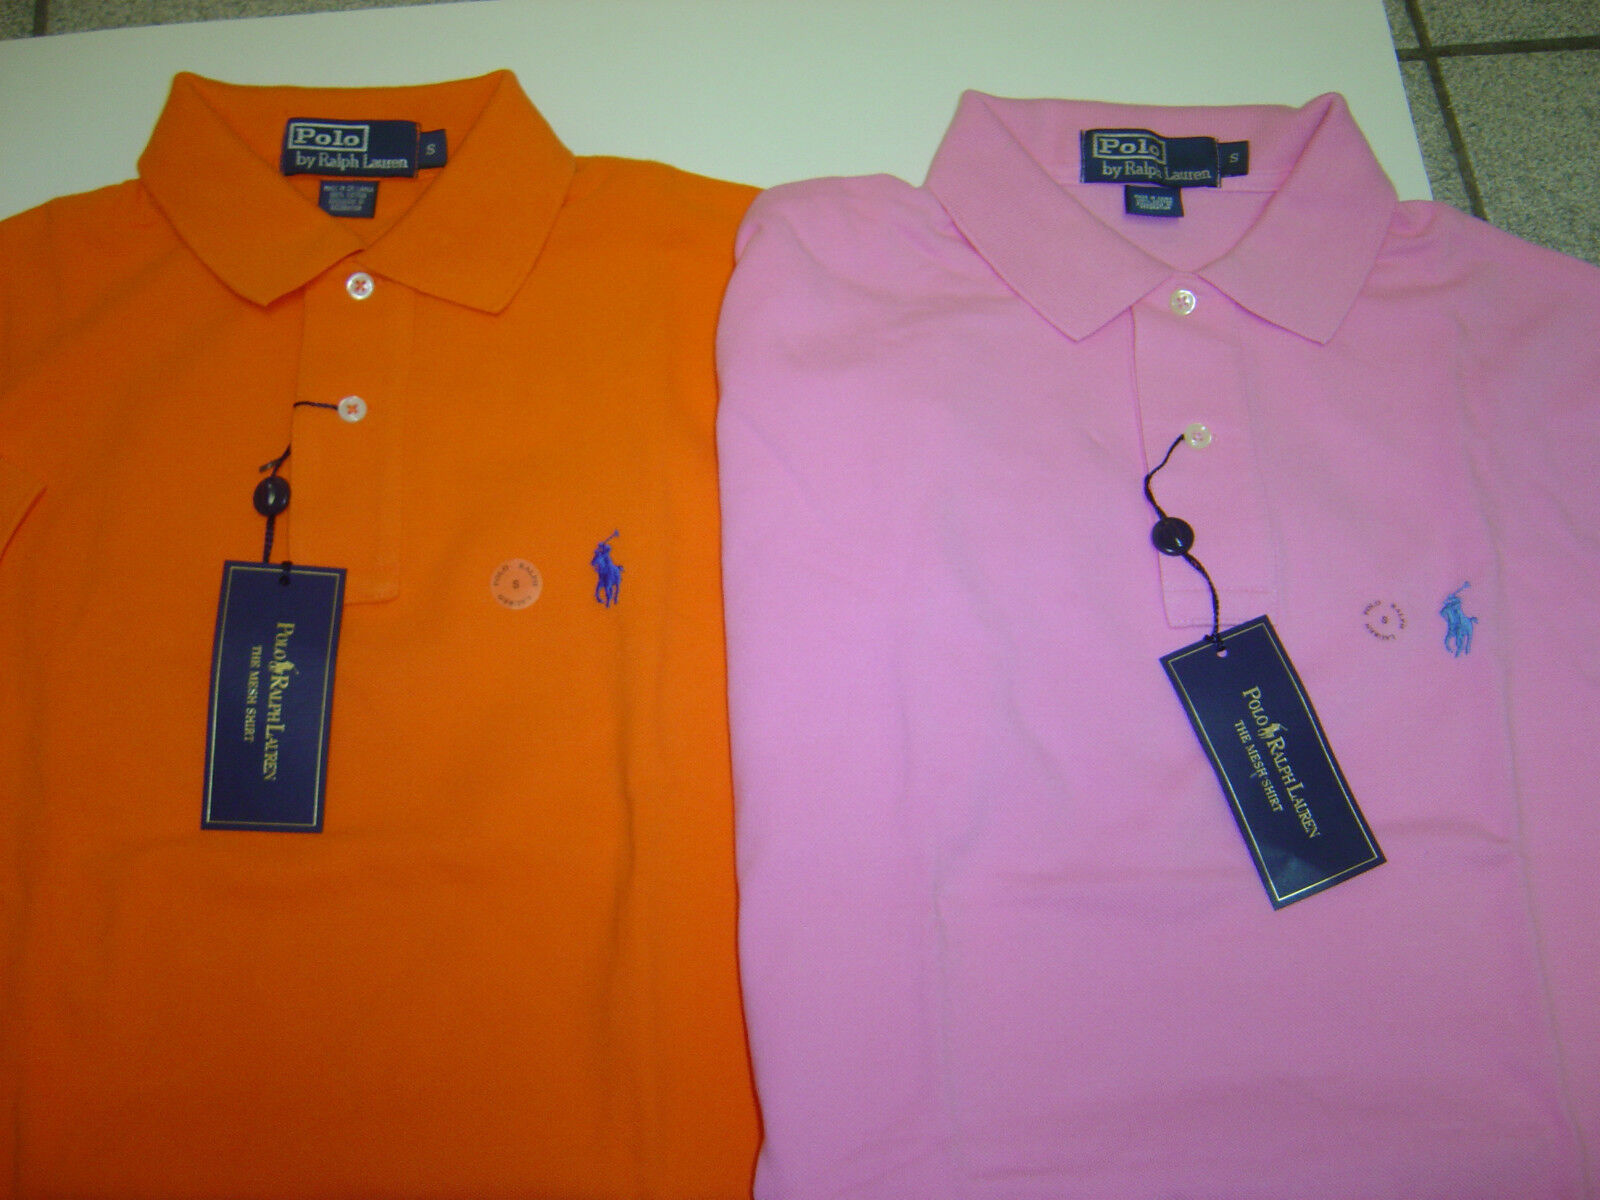 2 MENS RALPH LAUREN BRIGHT orange & PINK MESH S S POLOS SIZE S